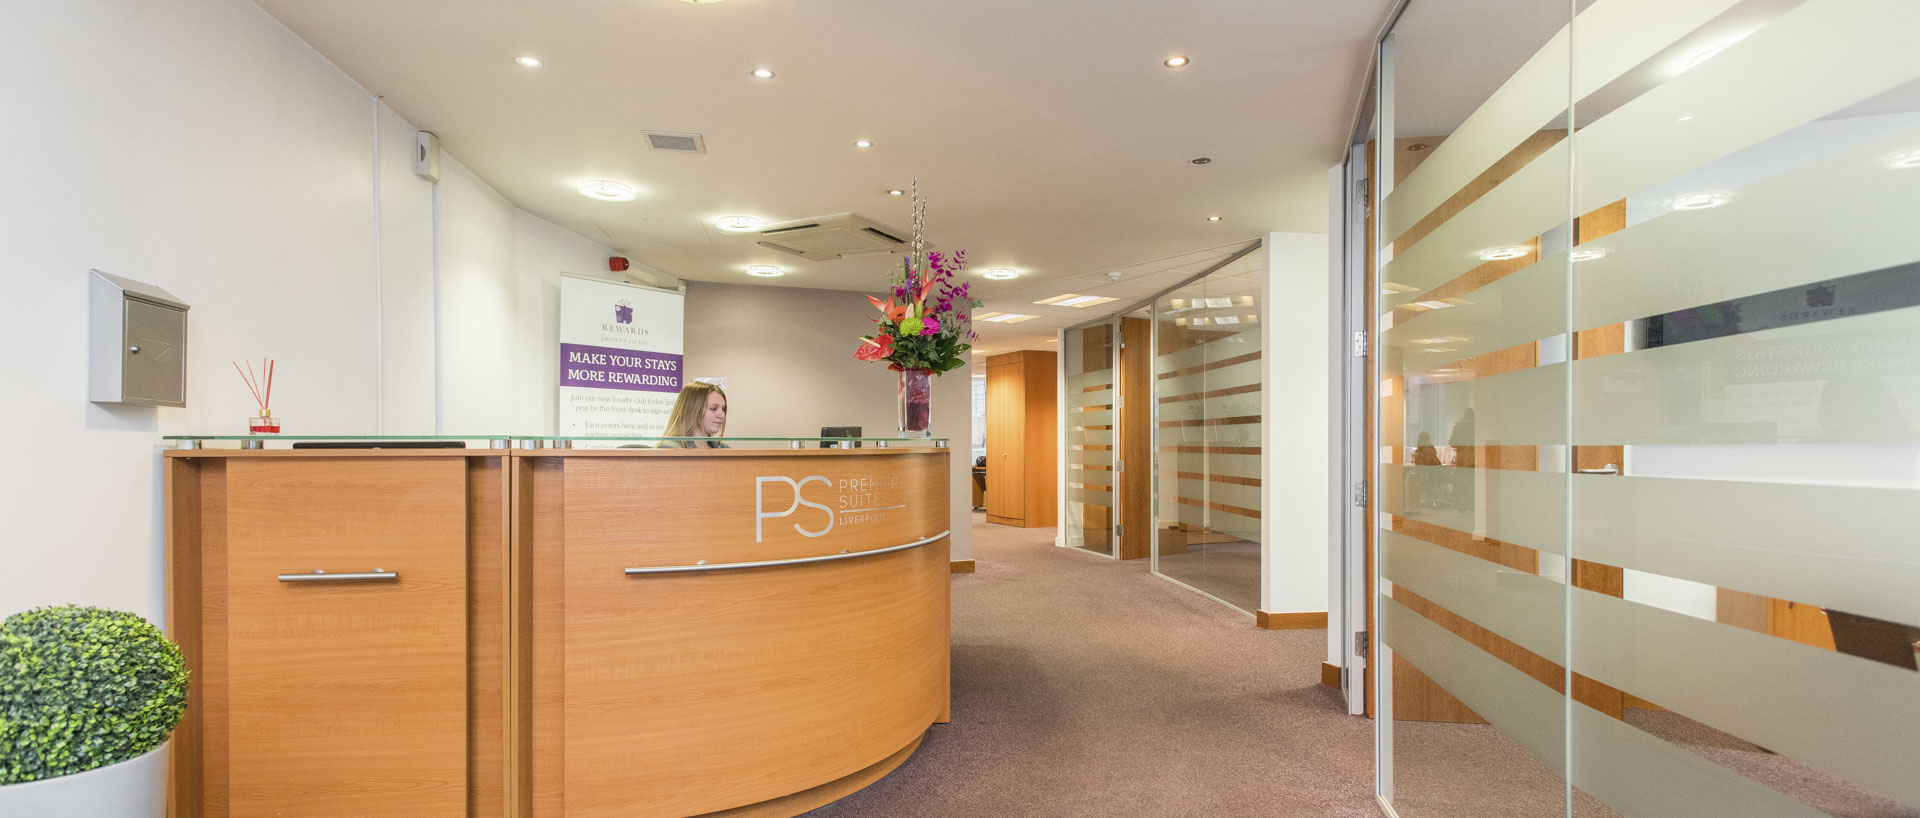 The reception area of PREMIER SUITES Liverpool